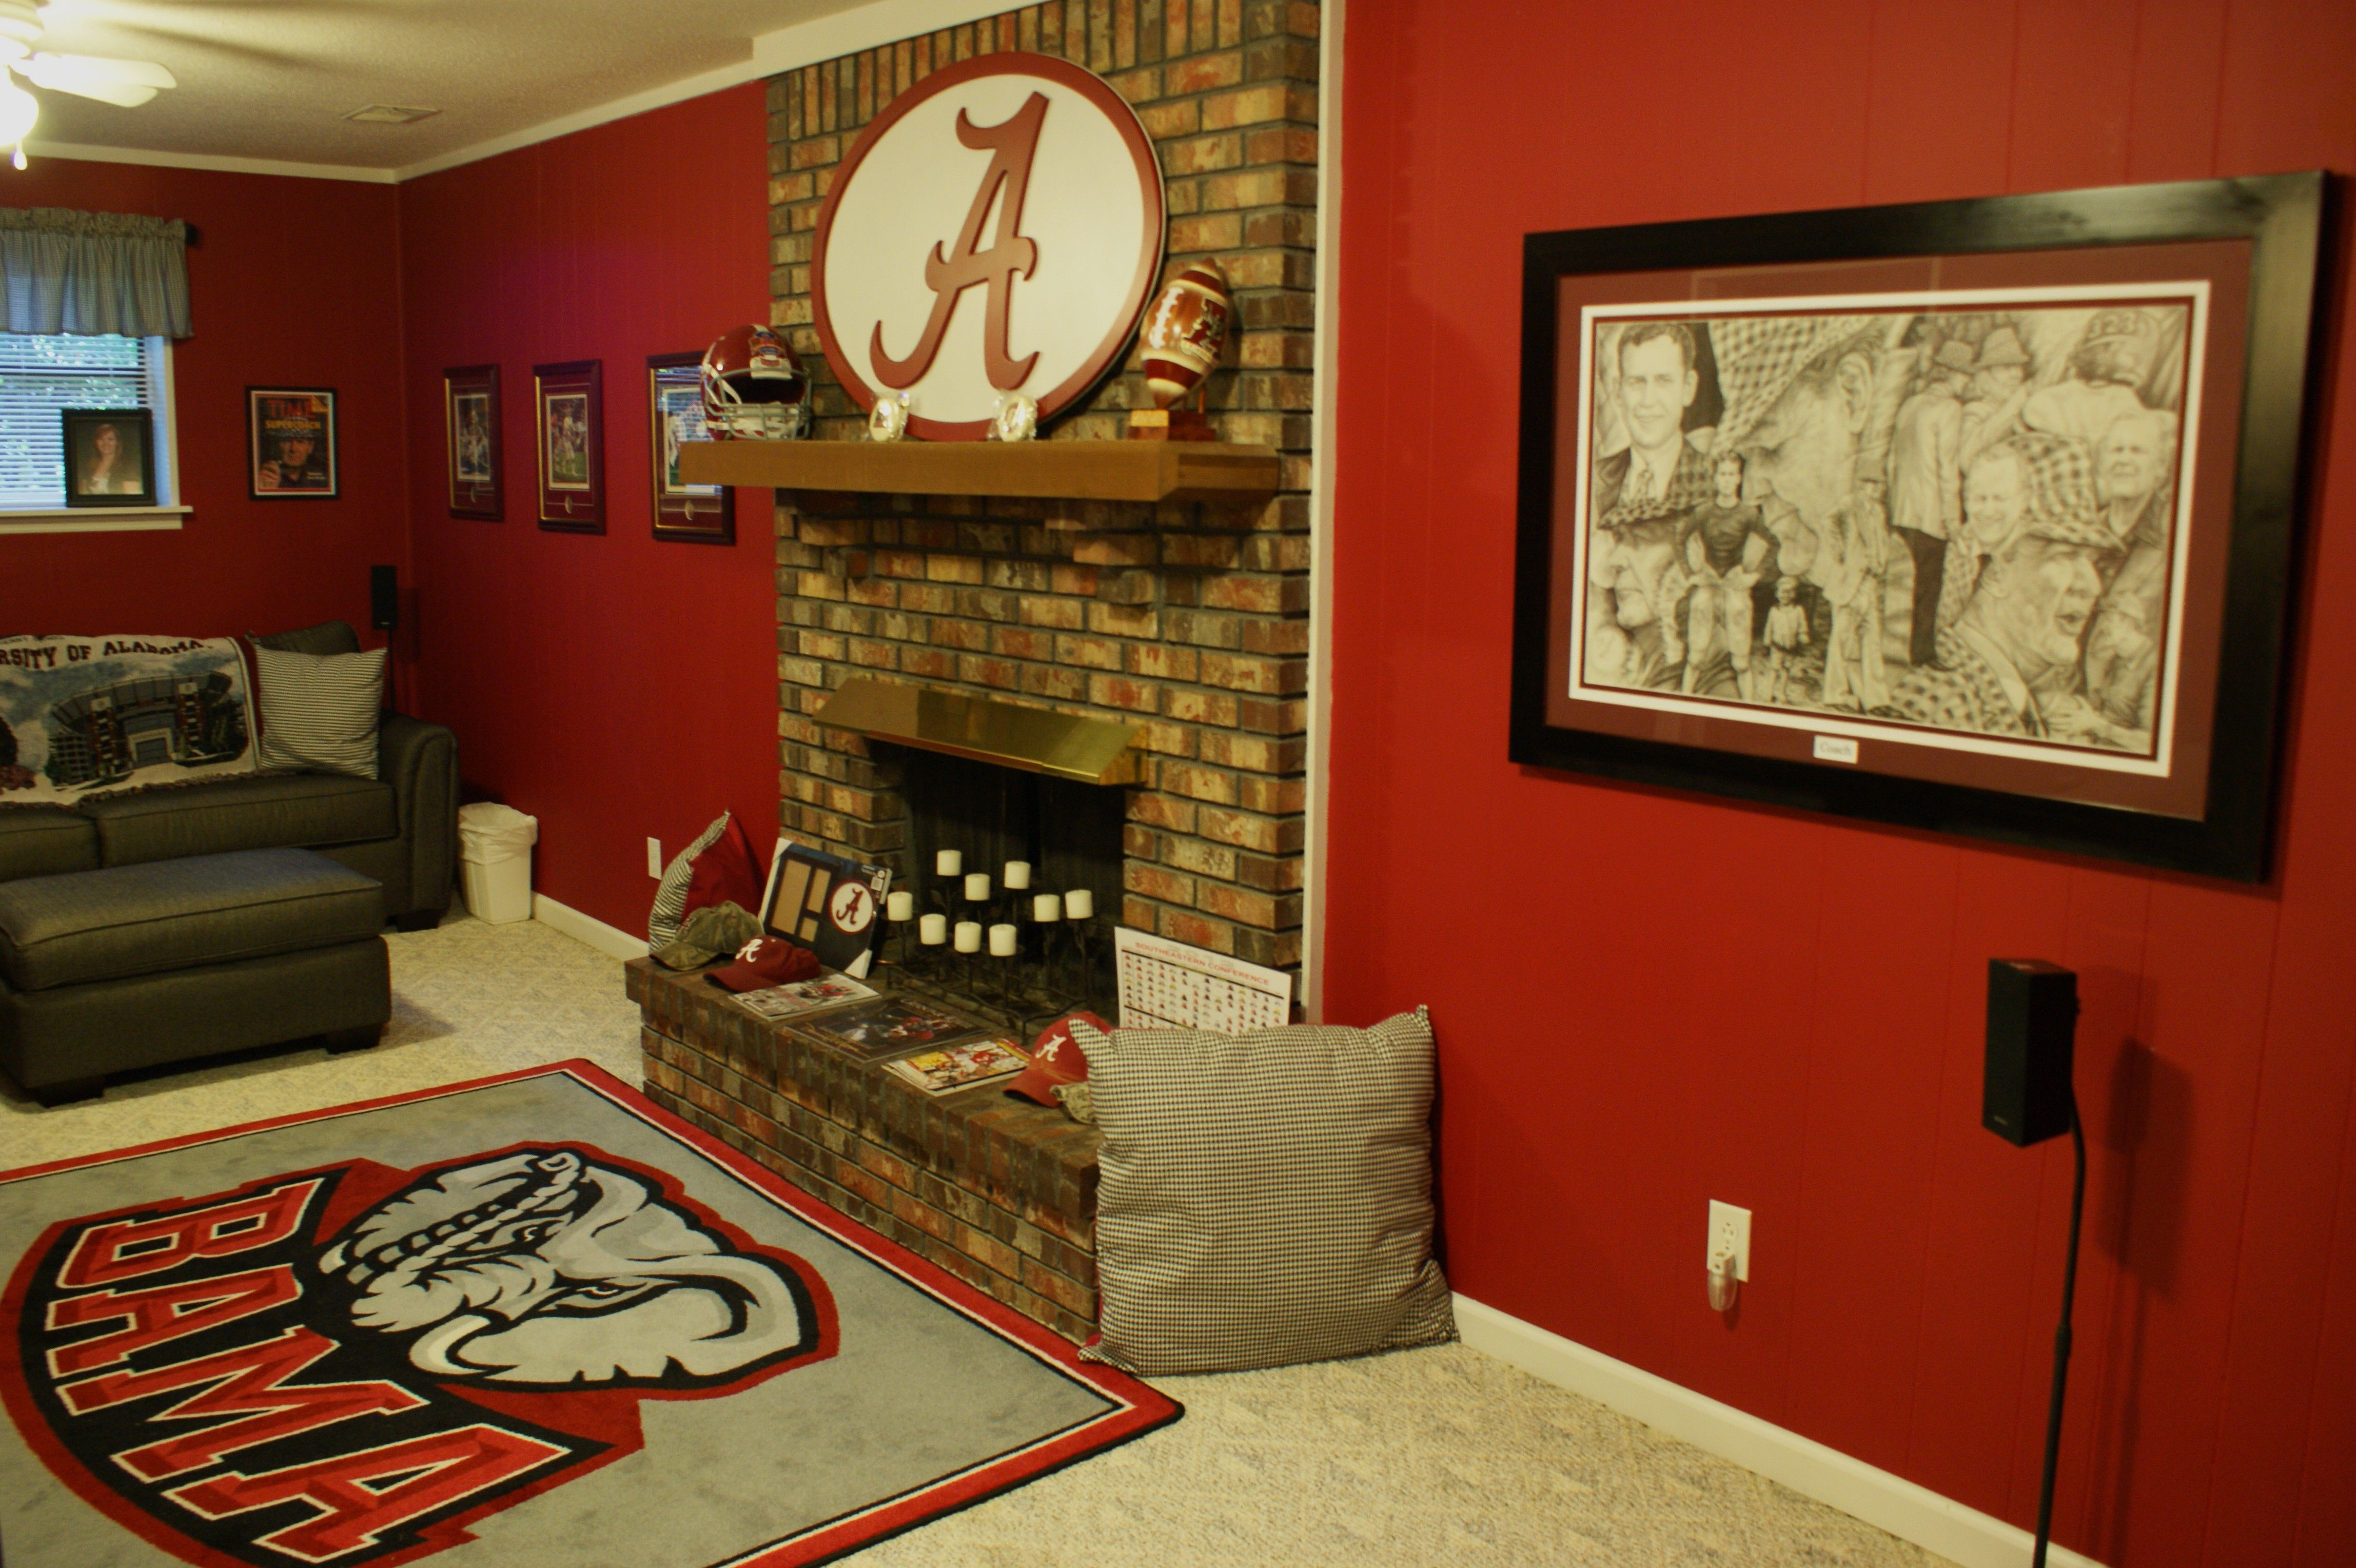 This Is How My Basement Should Look Bama Room Alabama Room Sweet Home Alabama Cute Home Decor